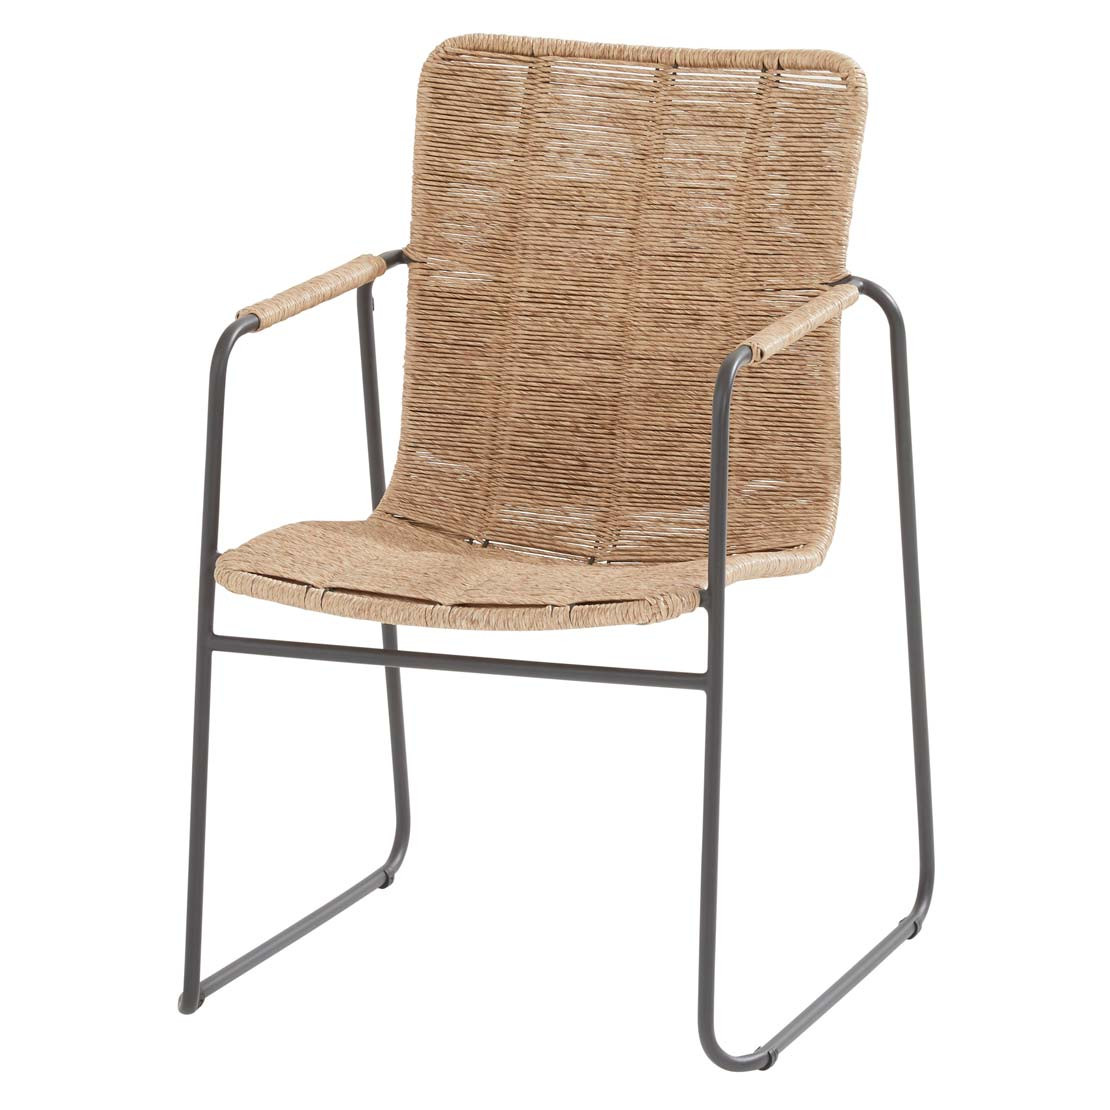 Palma stacking chair Natural